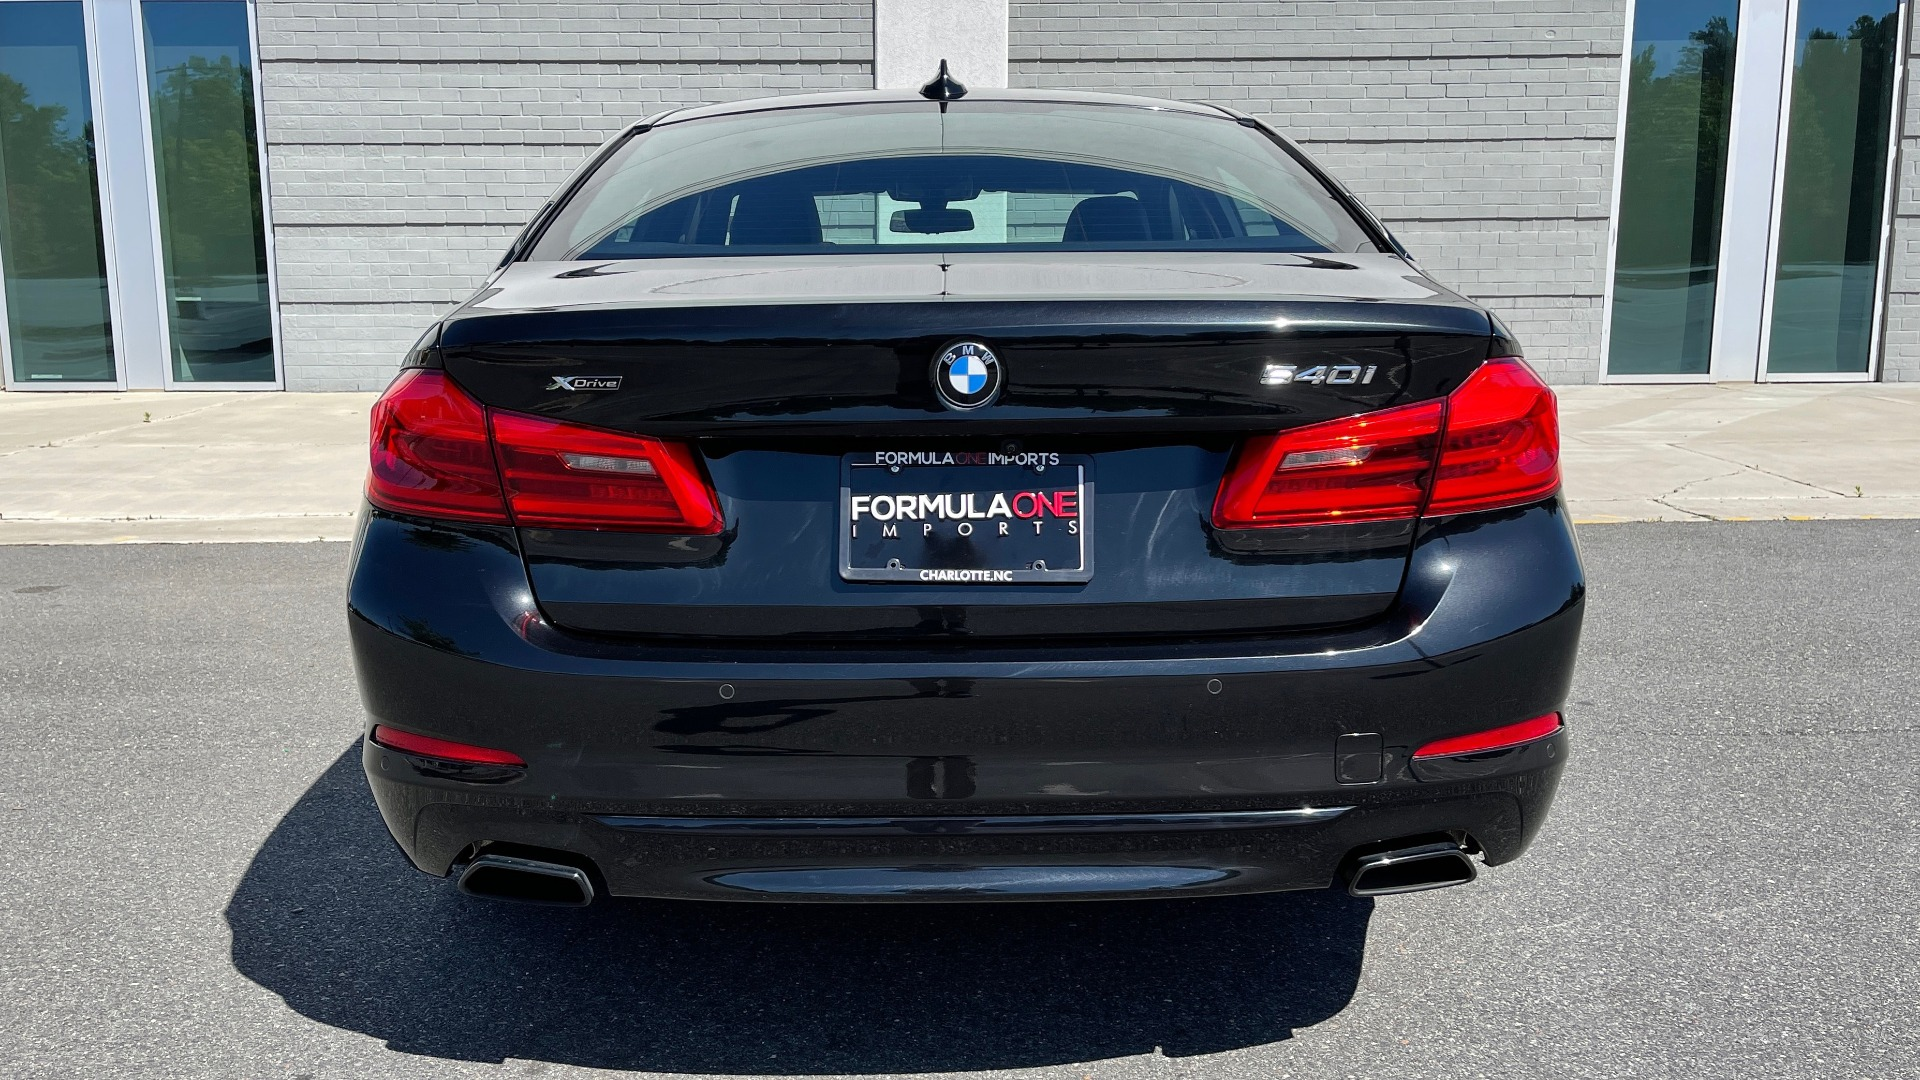 Used 2018 BMW 5 SERIES 540I XDRIVE PREMIUM / NAV / PARK ASST / WIRELESS CHARGING H/K SND for sale $38,395 at Formula Imports in Charlotte NC 28227 19